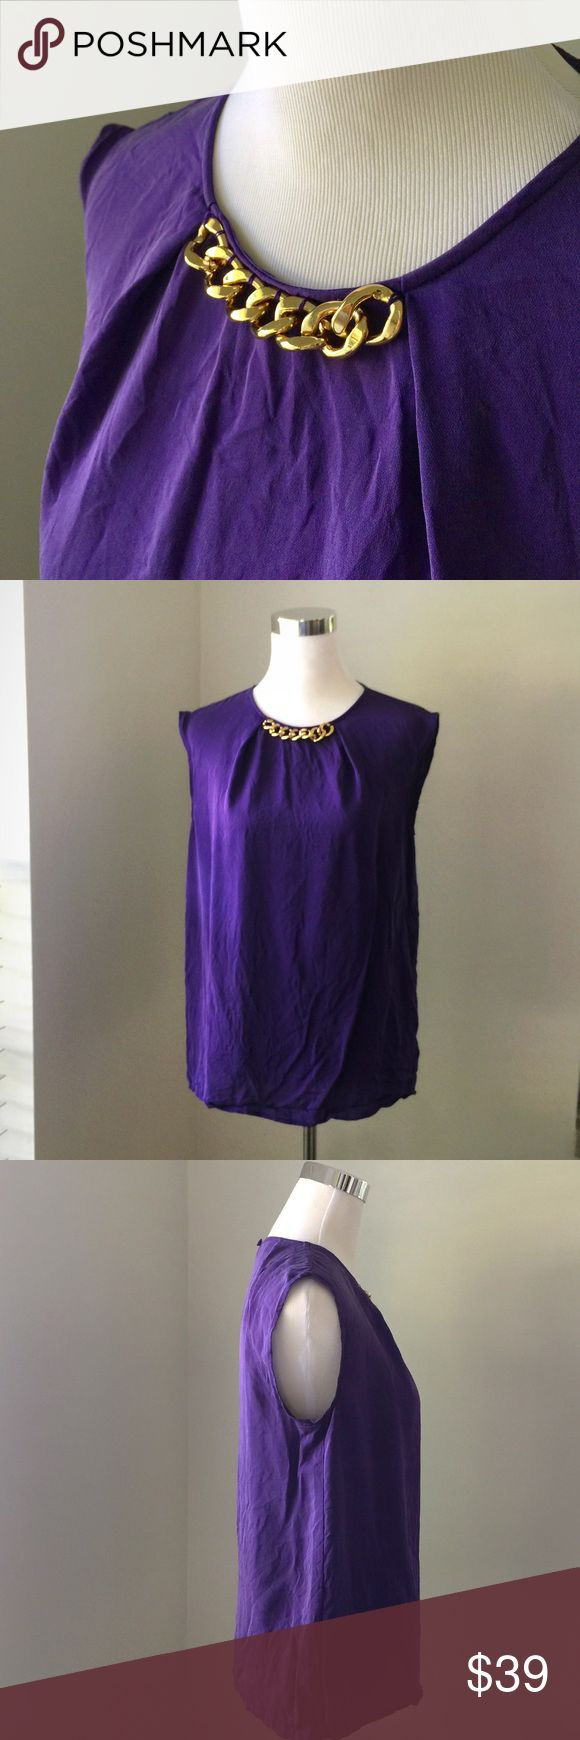 MK Amethyst & Gold Blouse A thick gold chain accents the neck line of this 💯 silk vibrant purple Michael Kors blouse. Excellent for work or play😉 and in excellent used condition. Michael Kors Tops